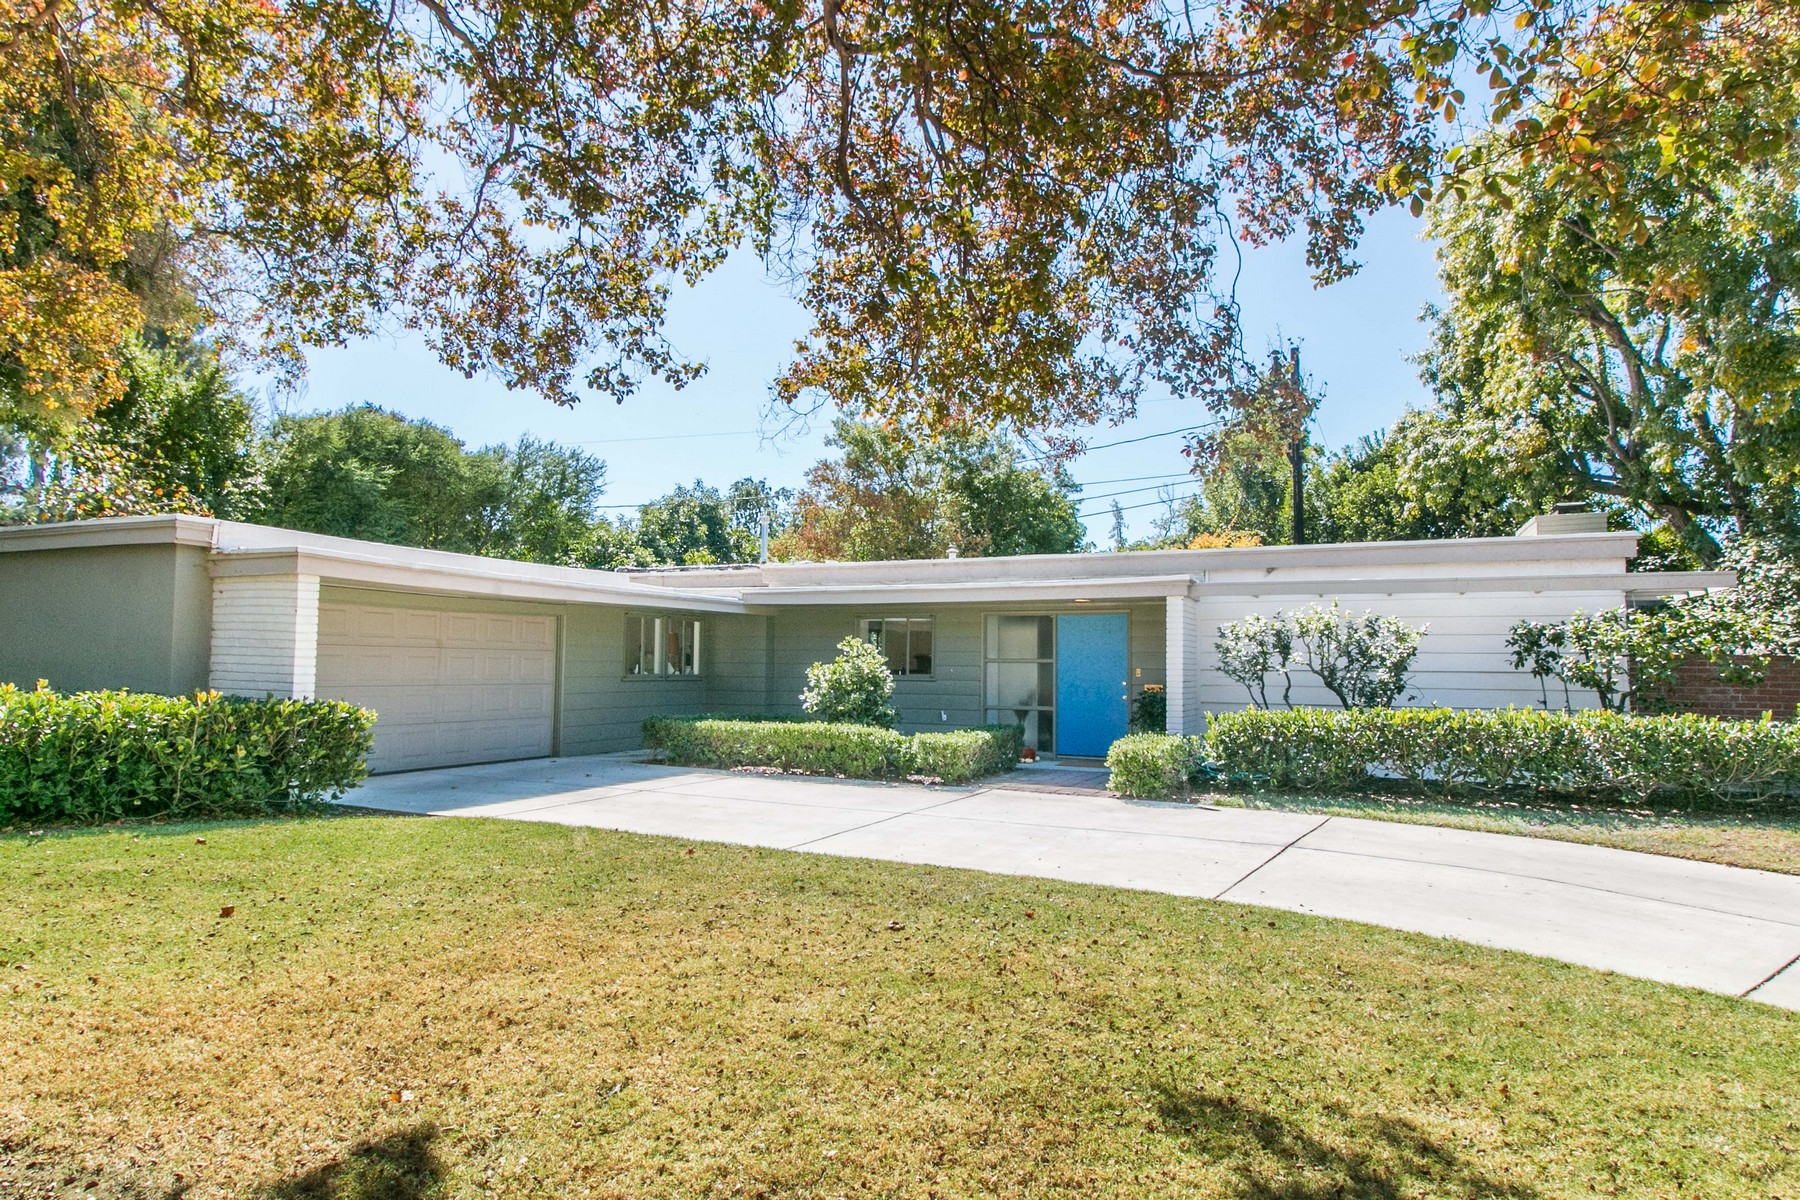 Single Family Homes for Sale at 558 Baughman Avenue, Claremont, CA 91711 558 Baughman Avenue Claremont, California 91711 United States